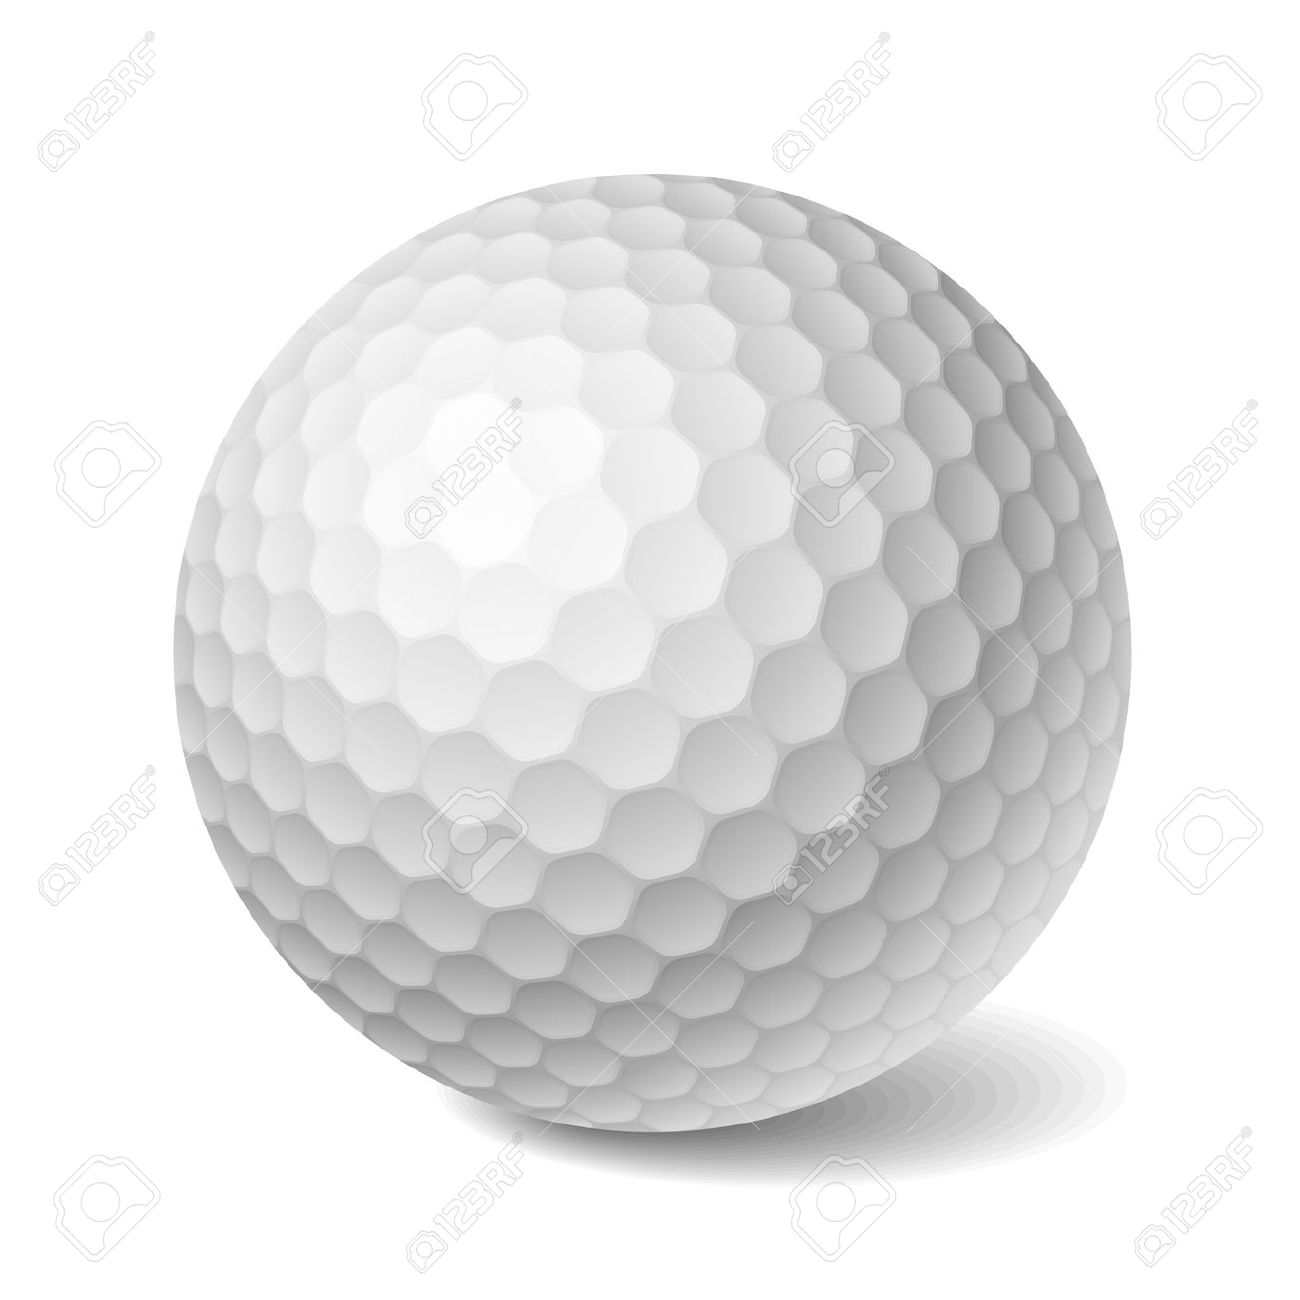 Golf Ball Transparent Background Clipart.